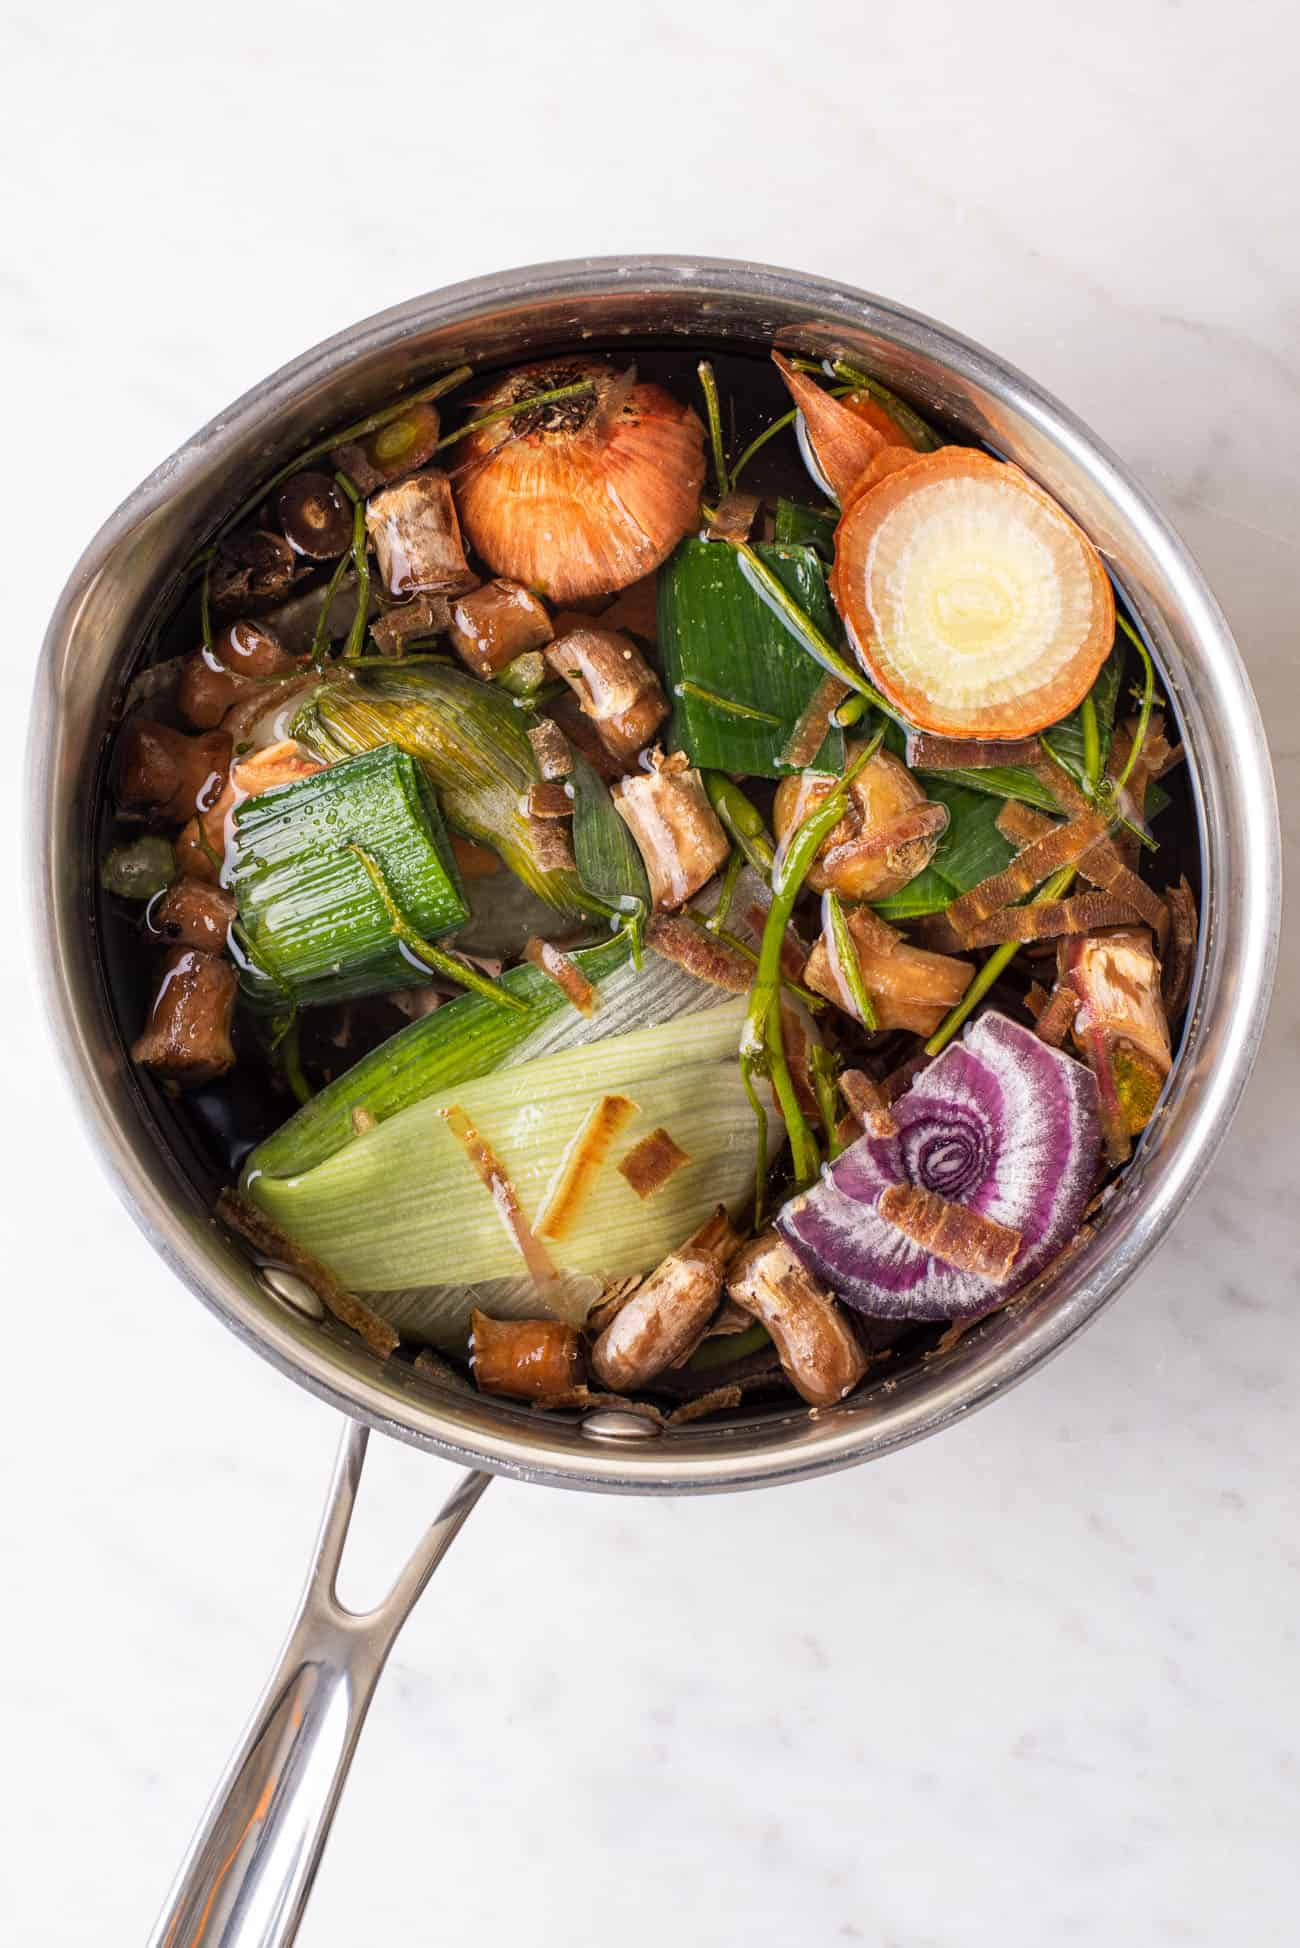 Vegetable scraps in a pot with water